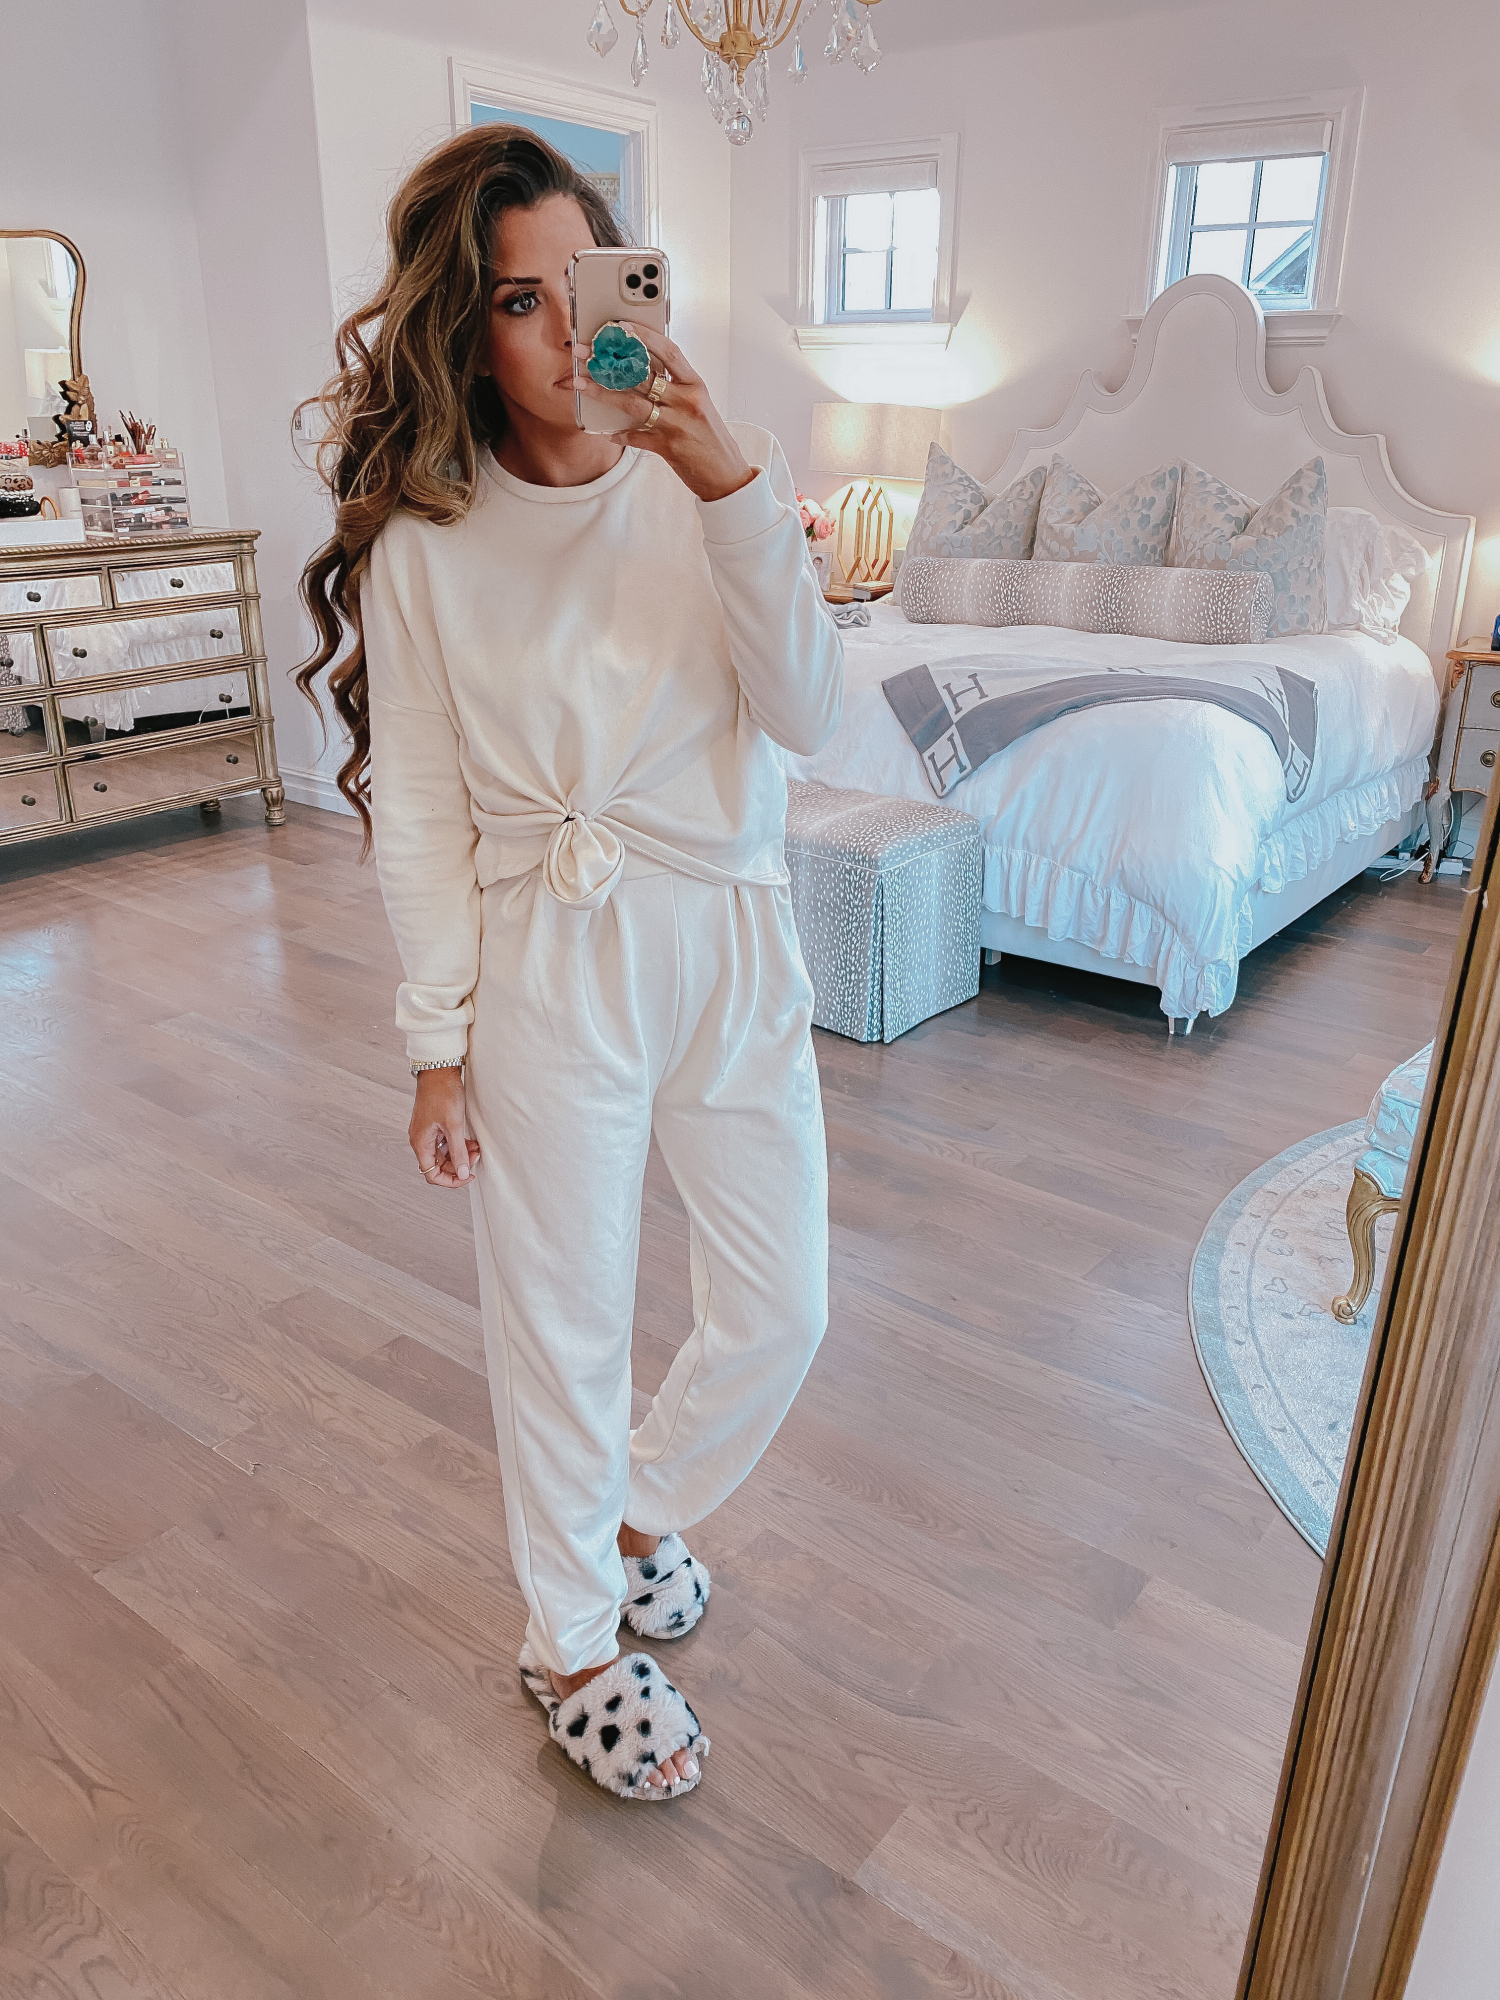 nasty gal loungewear review, cute loungwear outfits spring 2020, pinterest loungewear | Comfortable Loungewear by popular US fashion blog, The Sweetest Thing: image of Emily Gemma wearing a Z Supply The Pale Blush Rugby Stripe Weekender Sweater and Nordstrom Zella leggings.Comfortable Loungewear by popular US fashion blog, The Sweetest Thing: image of Emily Gemma wearing a Free People Culver City Set.